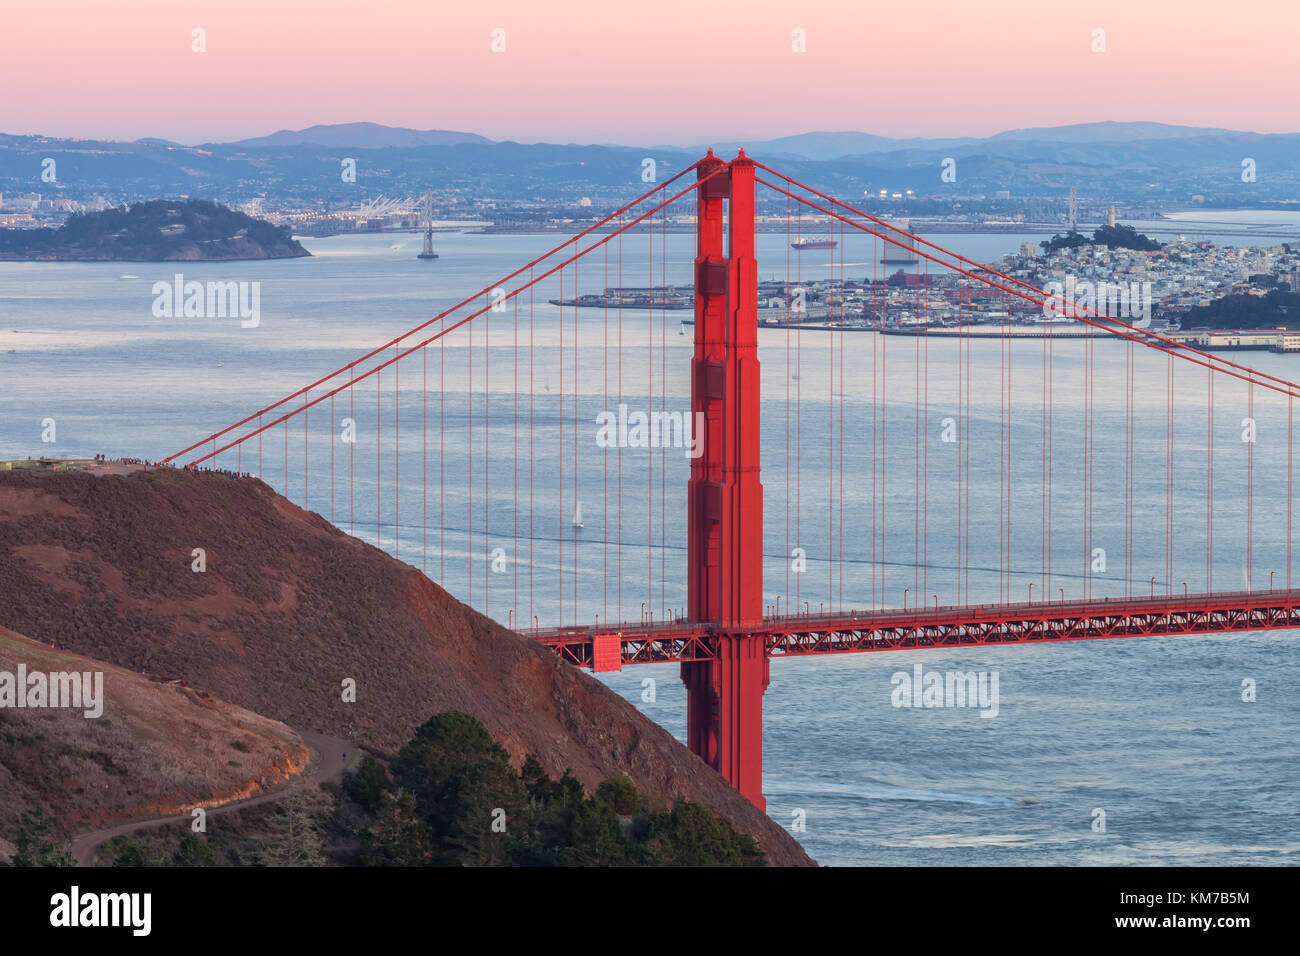 Nightfall over the Golden Gate Bridge and The San Francisco Bay, California, United States. - Stock Image